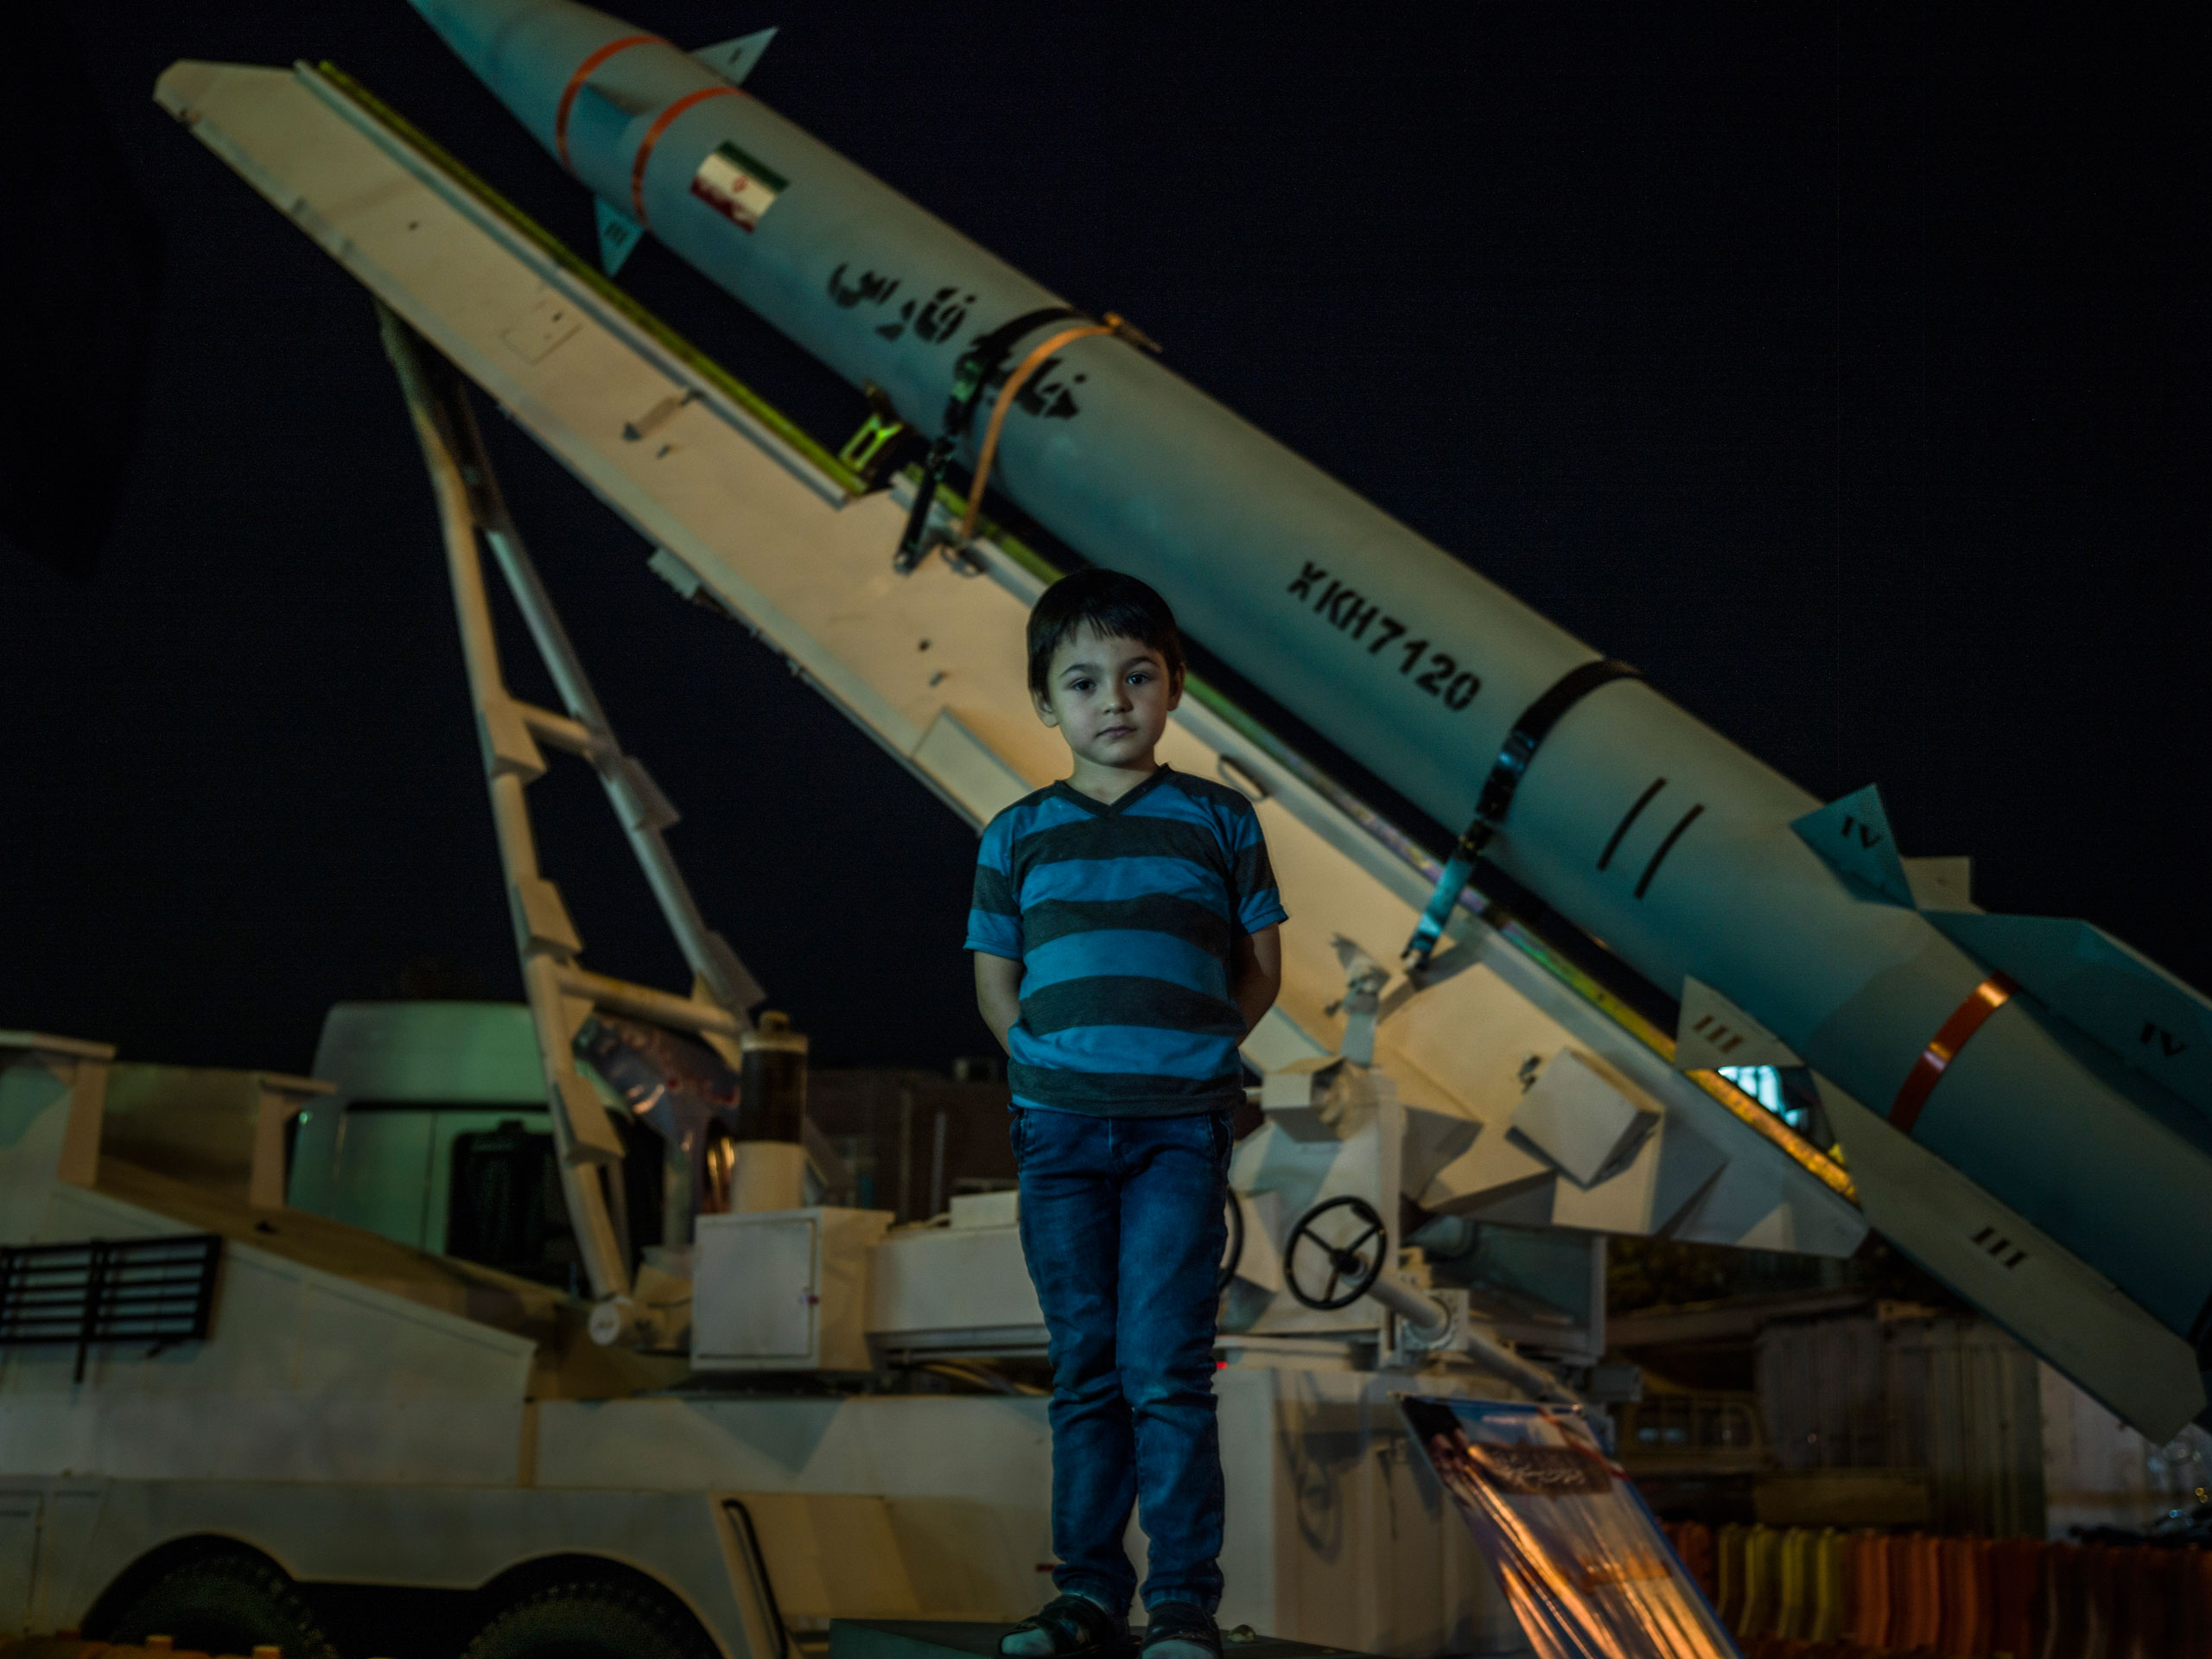 A boy visits Tehran's southern Baharestan Square with his family, where a missile is displayed as part of the  Sacred Defense Week,  a period commemorating the Iran-Iraq War.